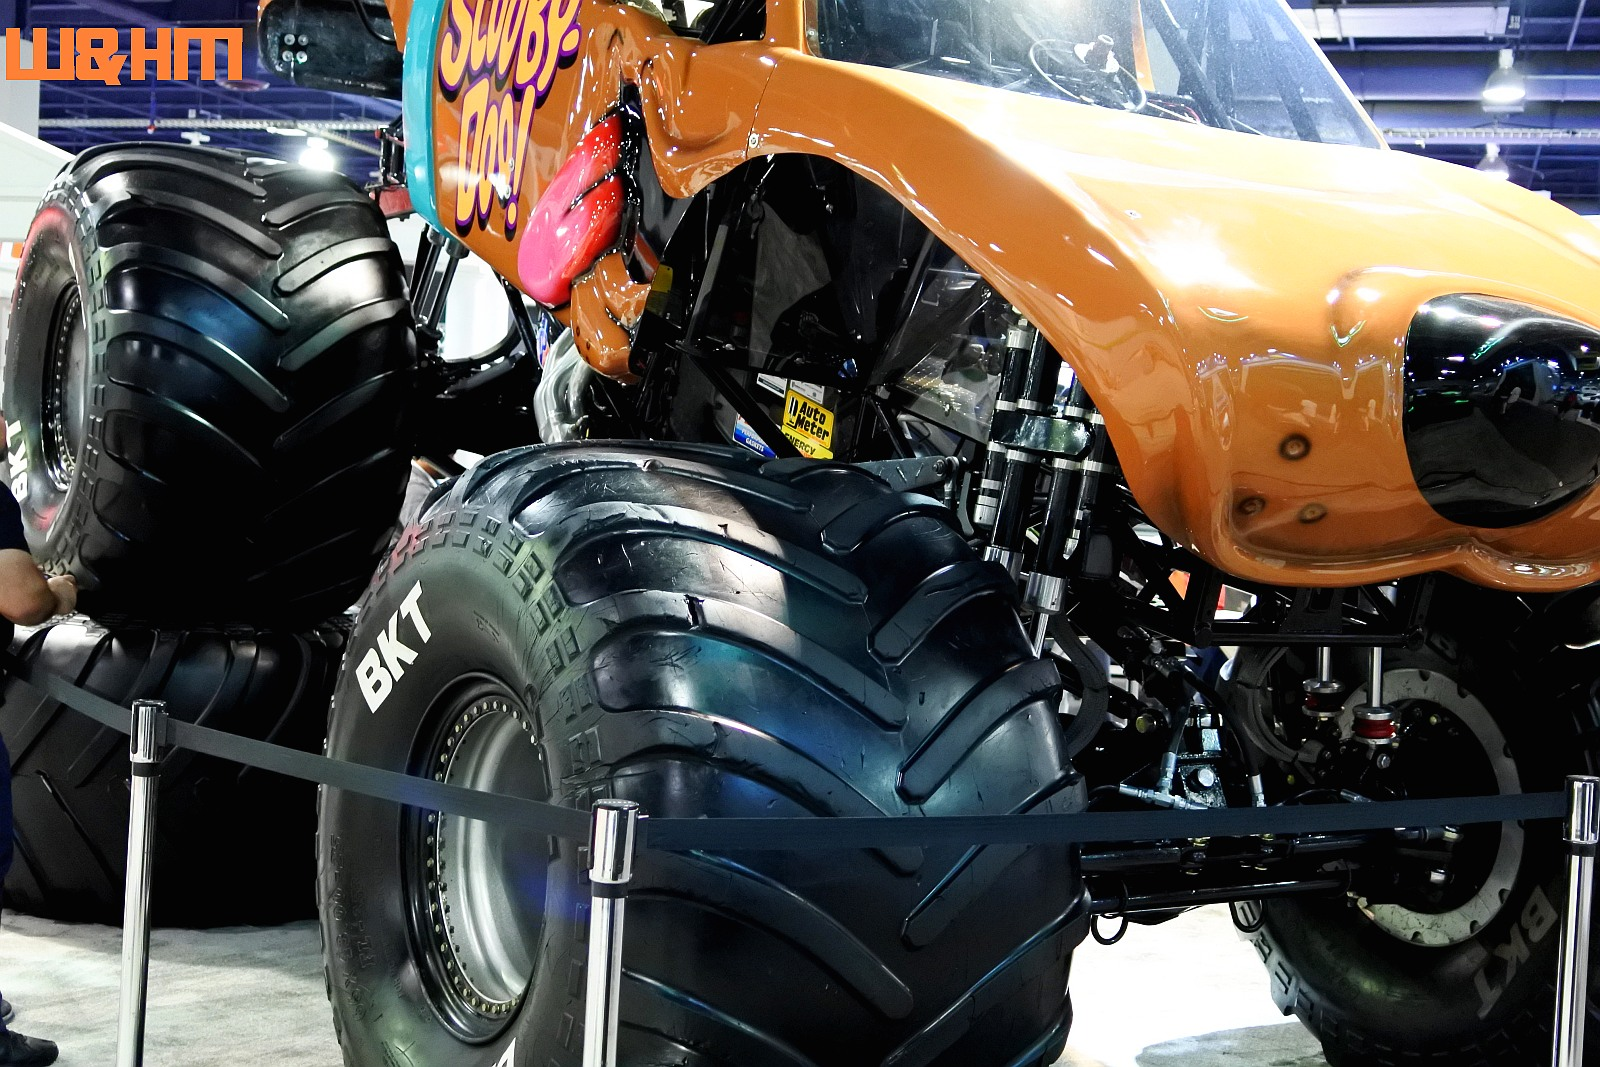 Bkt Tire Company Brought Scooby Doo Monster Truck To Wow